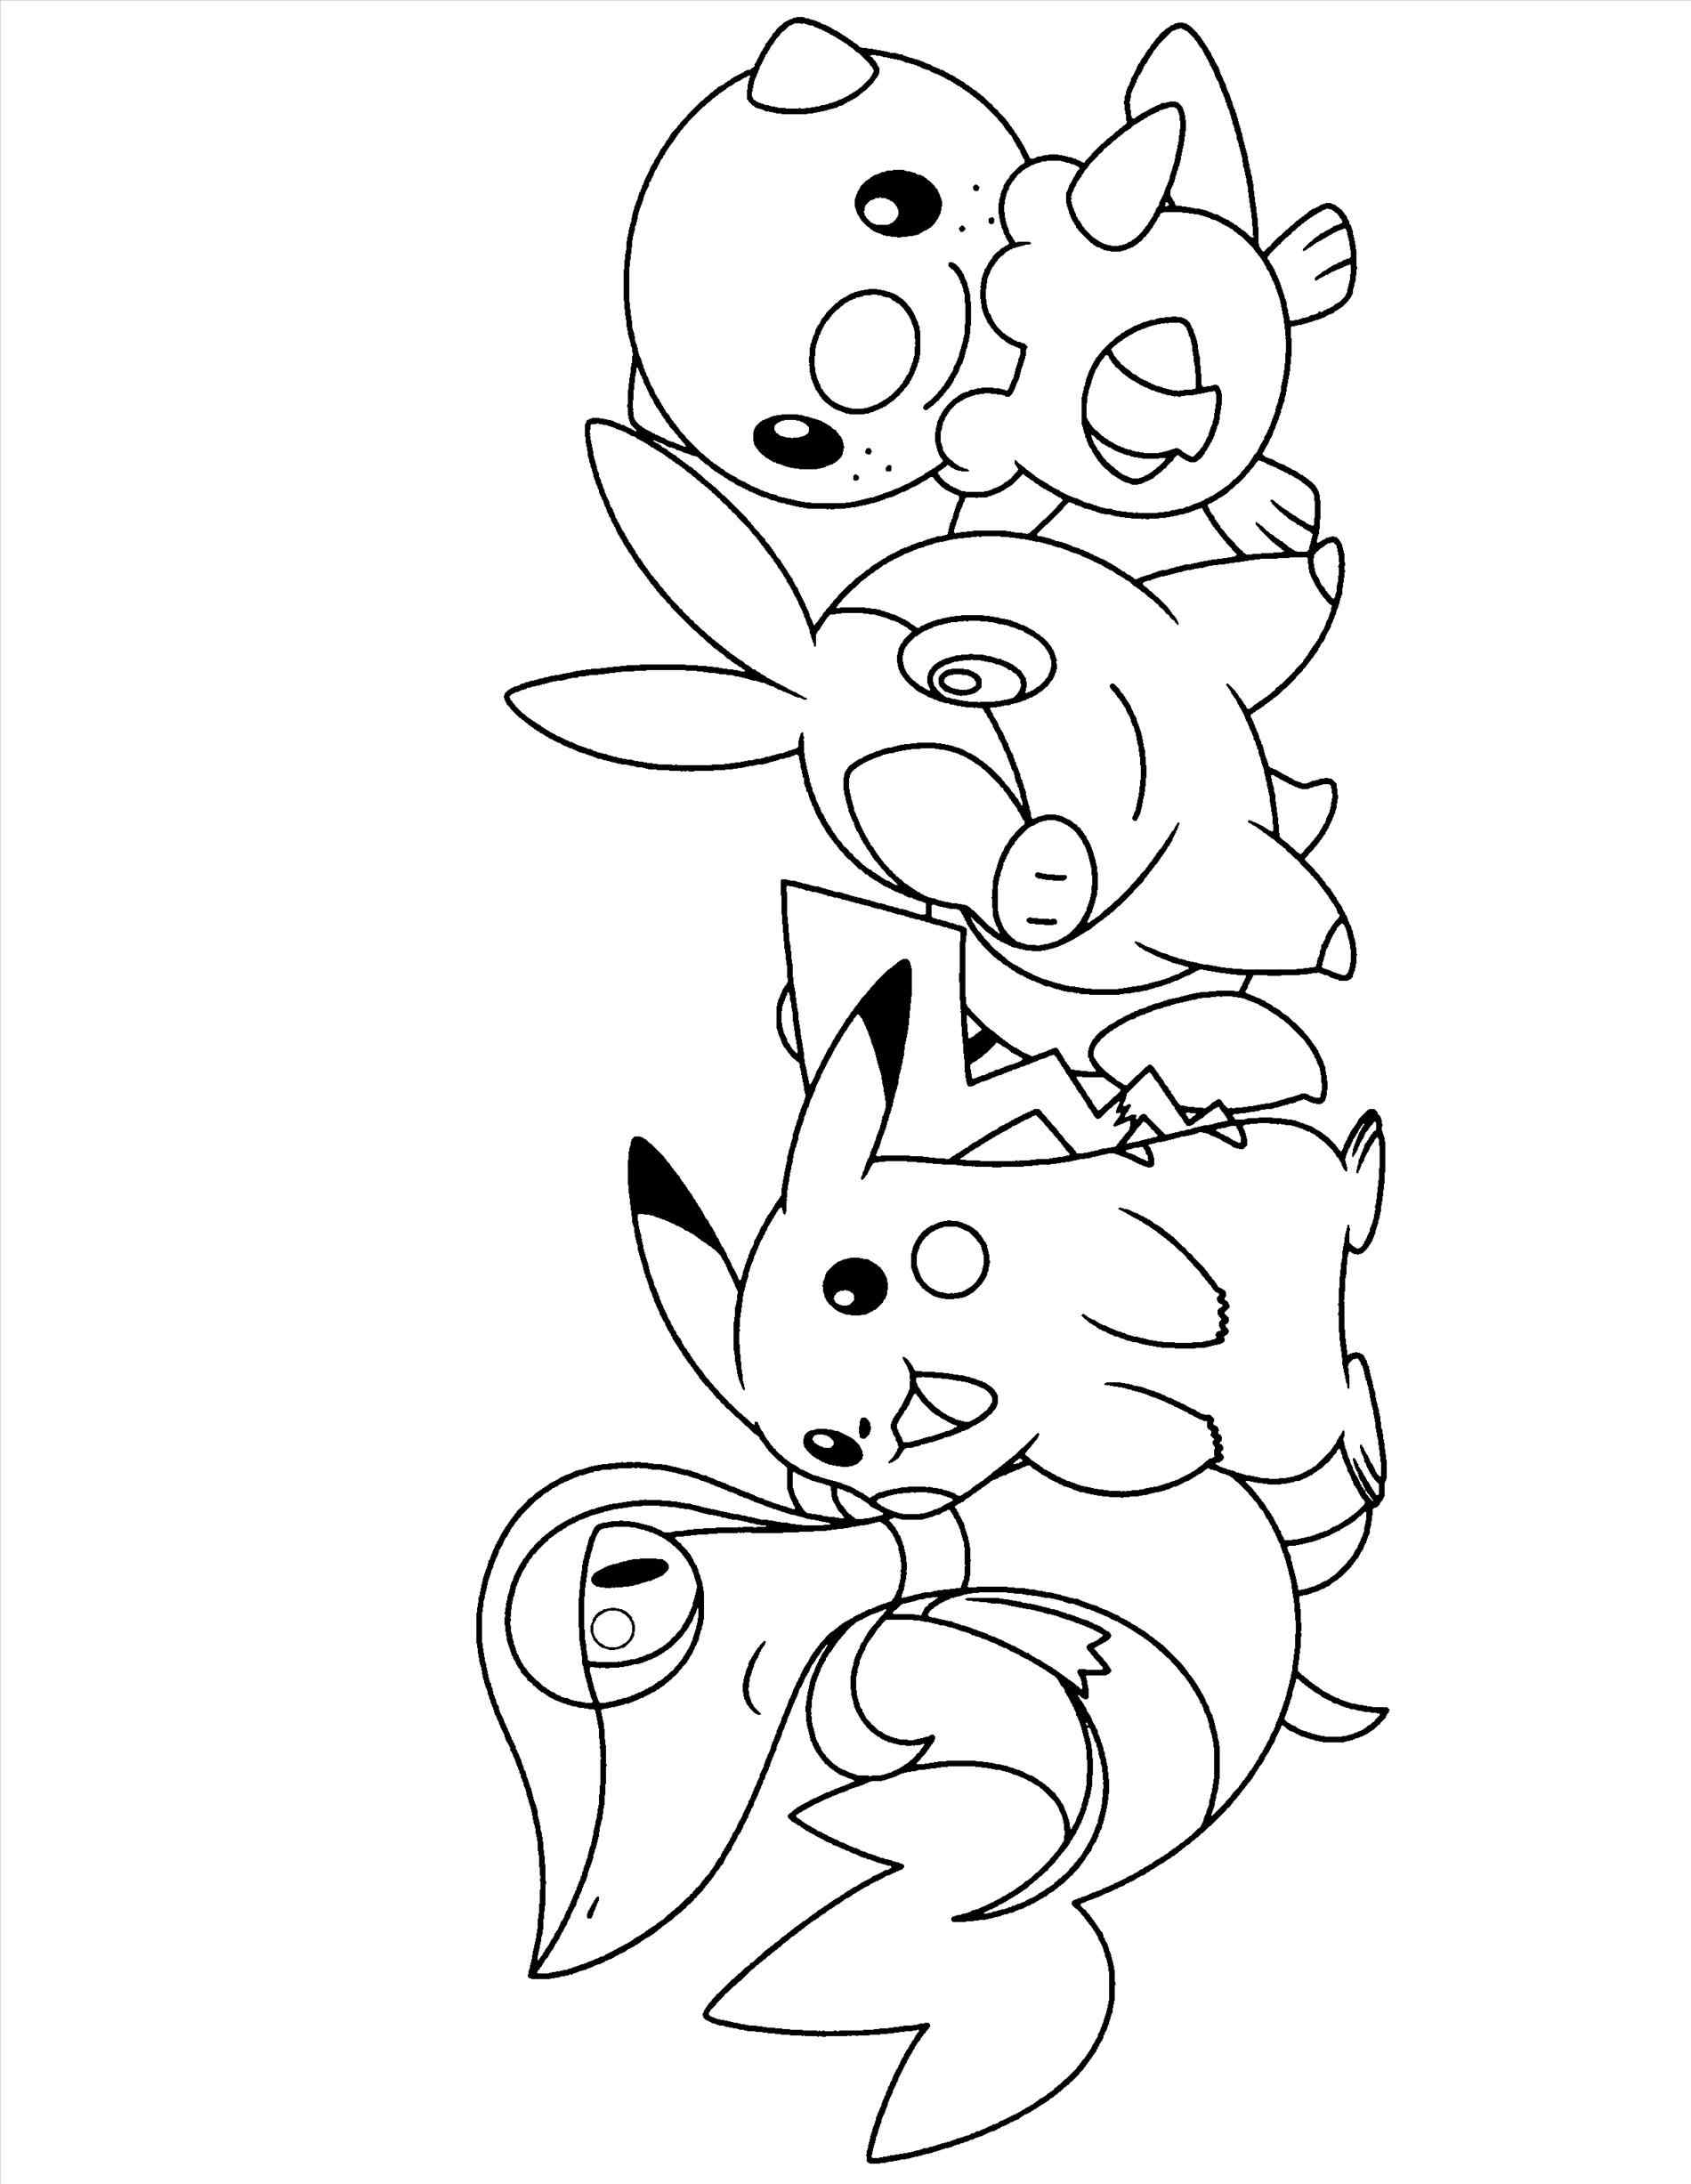 Gangster Mickey Mouse Coloring Pages at GetColorings